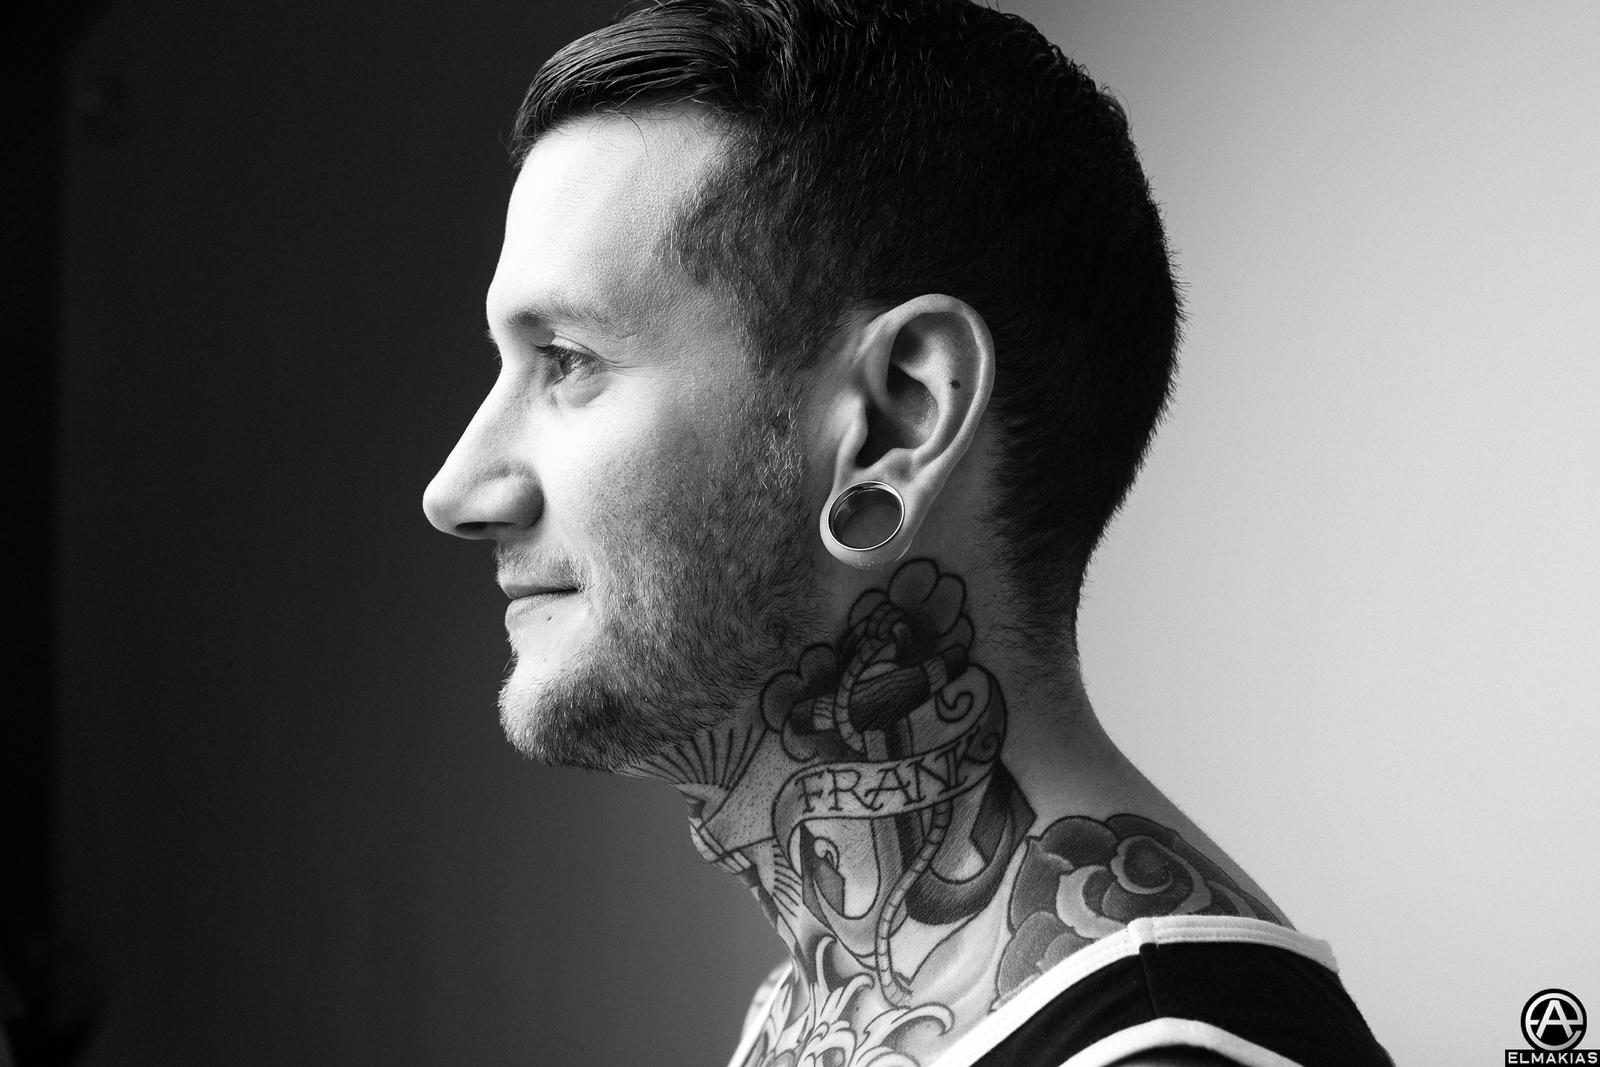 Anthony Del Grosso of This Wild Life